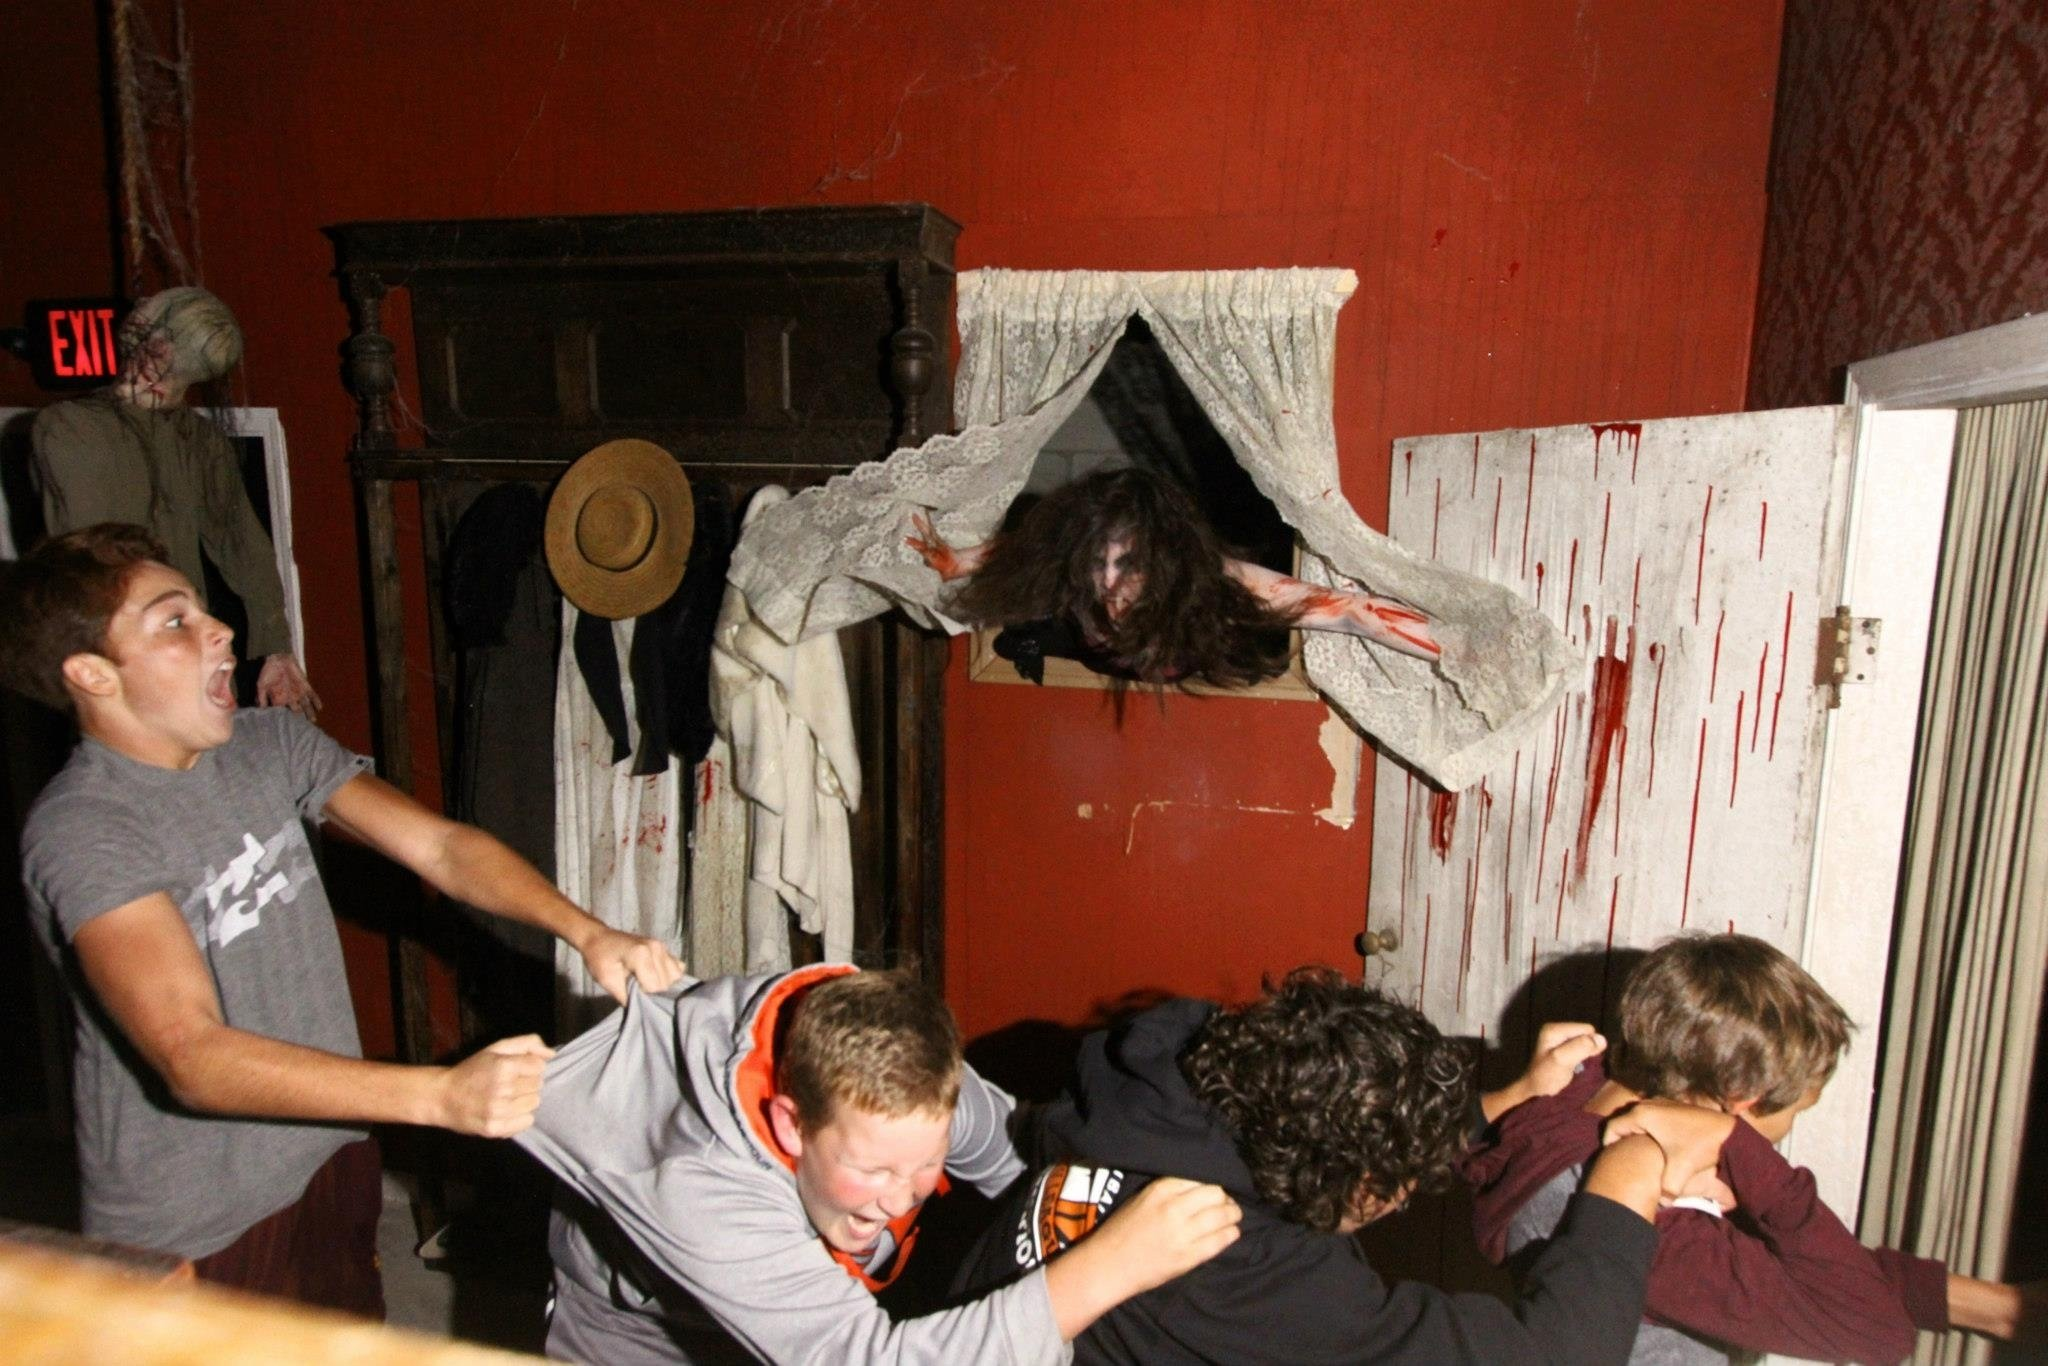 10 Stunning Scary Haunted House Room Ideas thousand oaks scare zone 2021